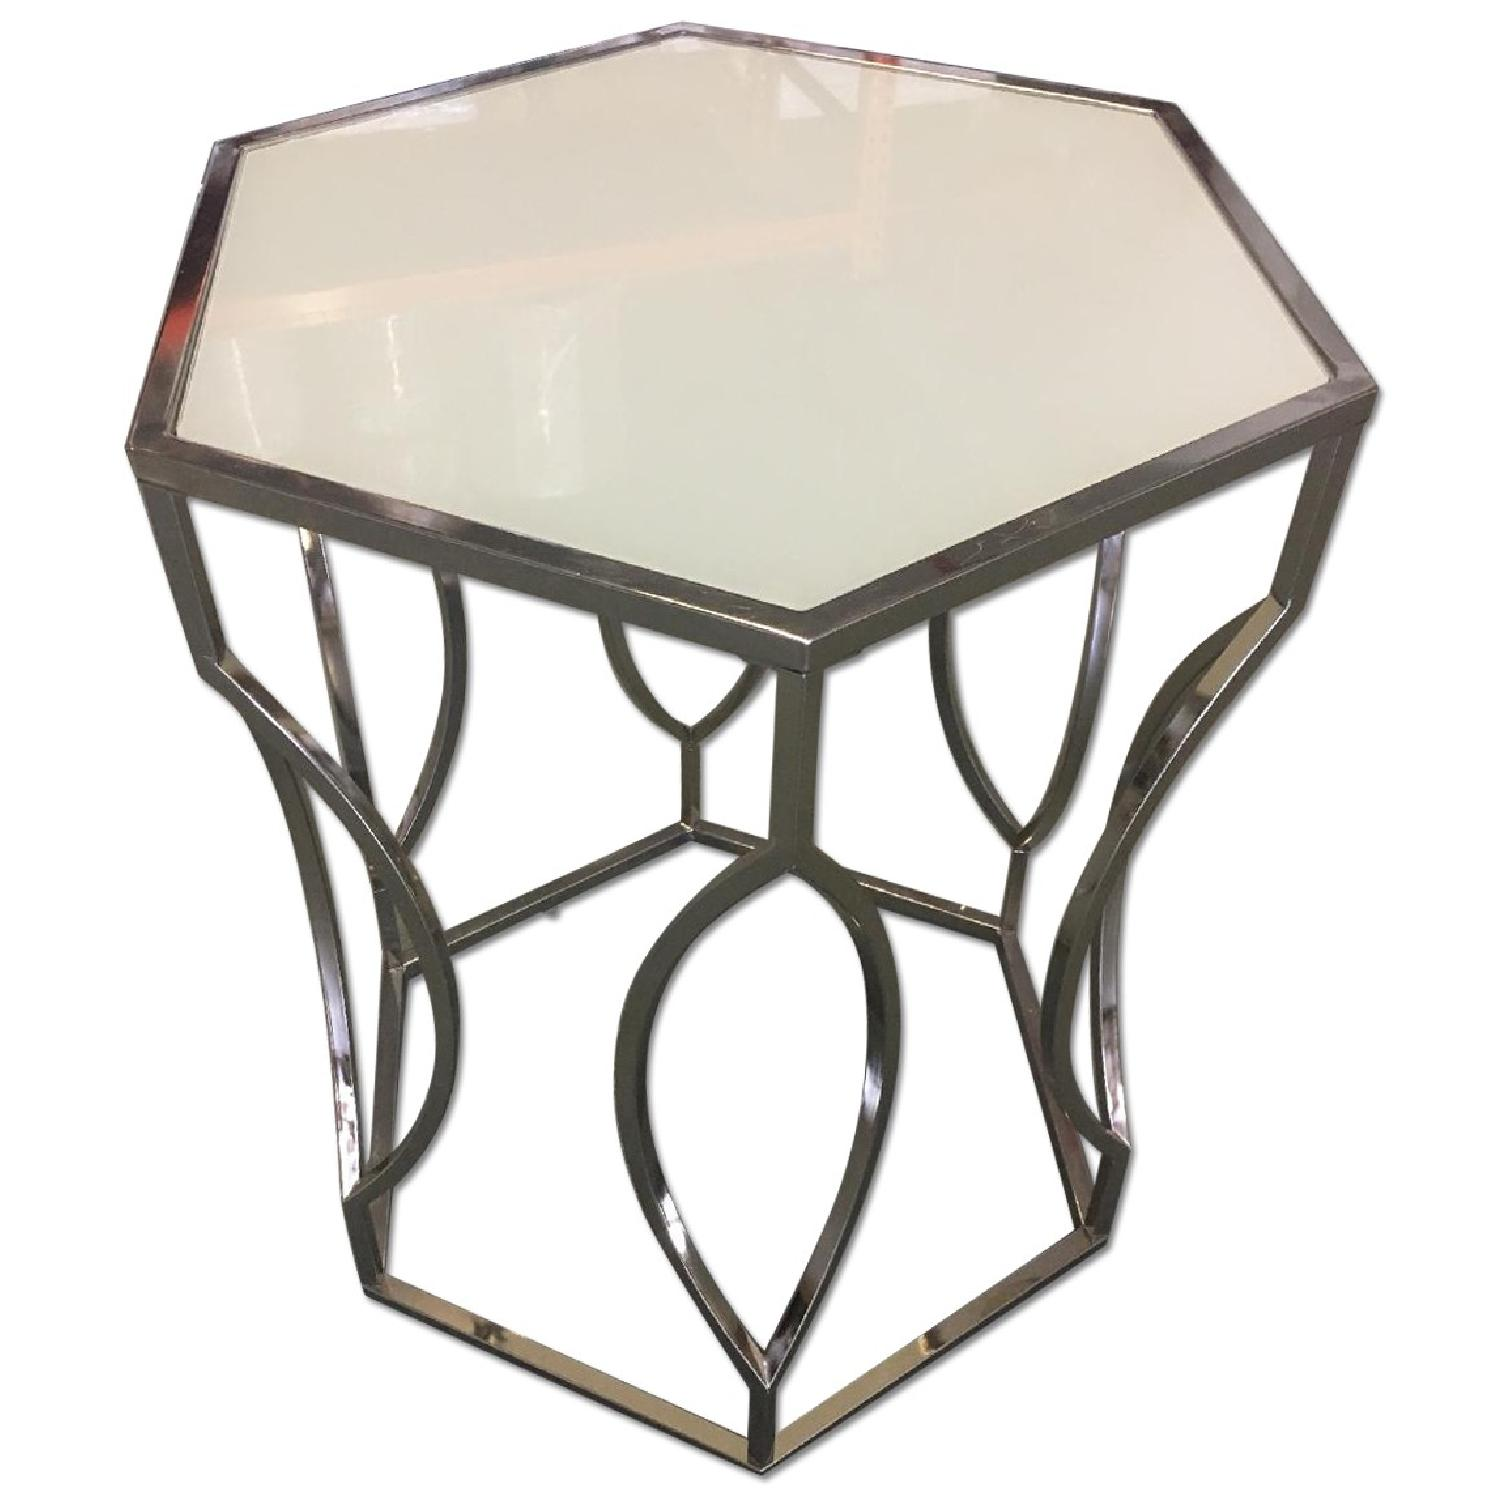 Givenchy Chrome End Tables w/ White Glass Top